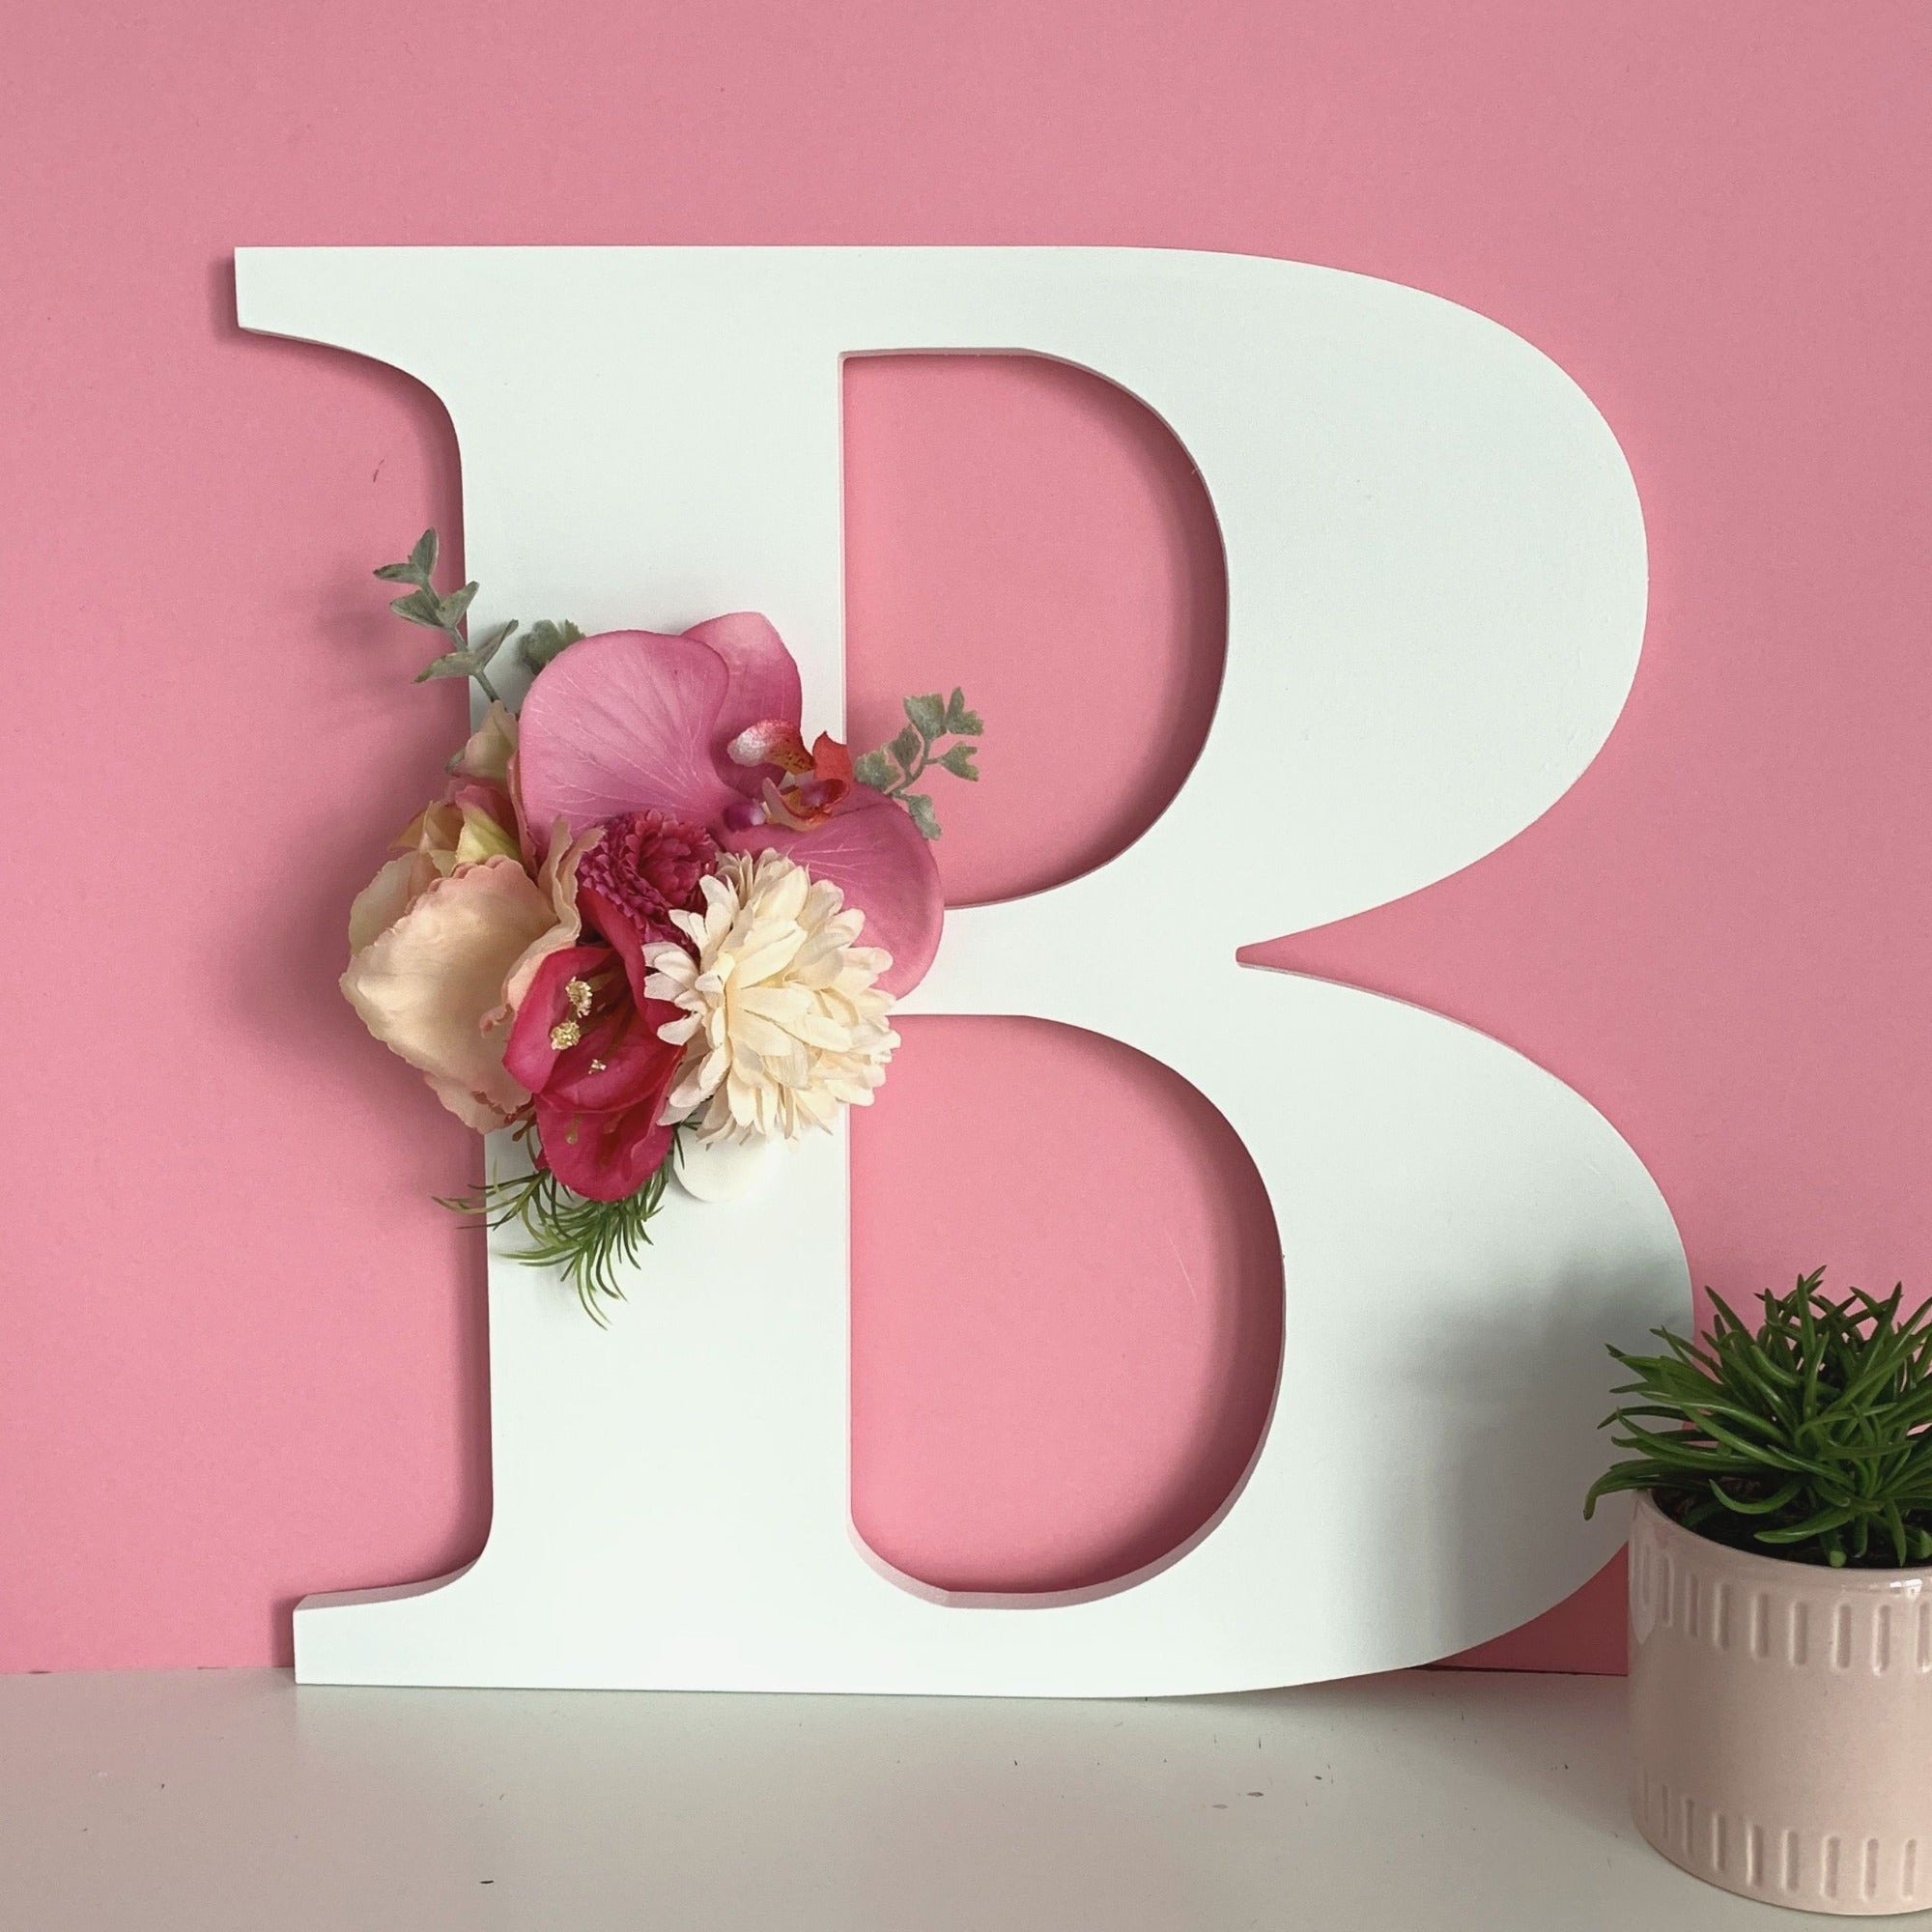 Floral Wall Letters Girls bedroom